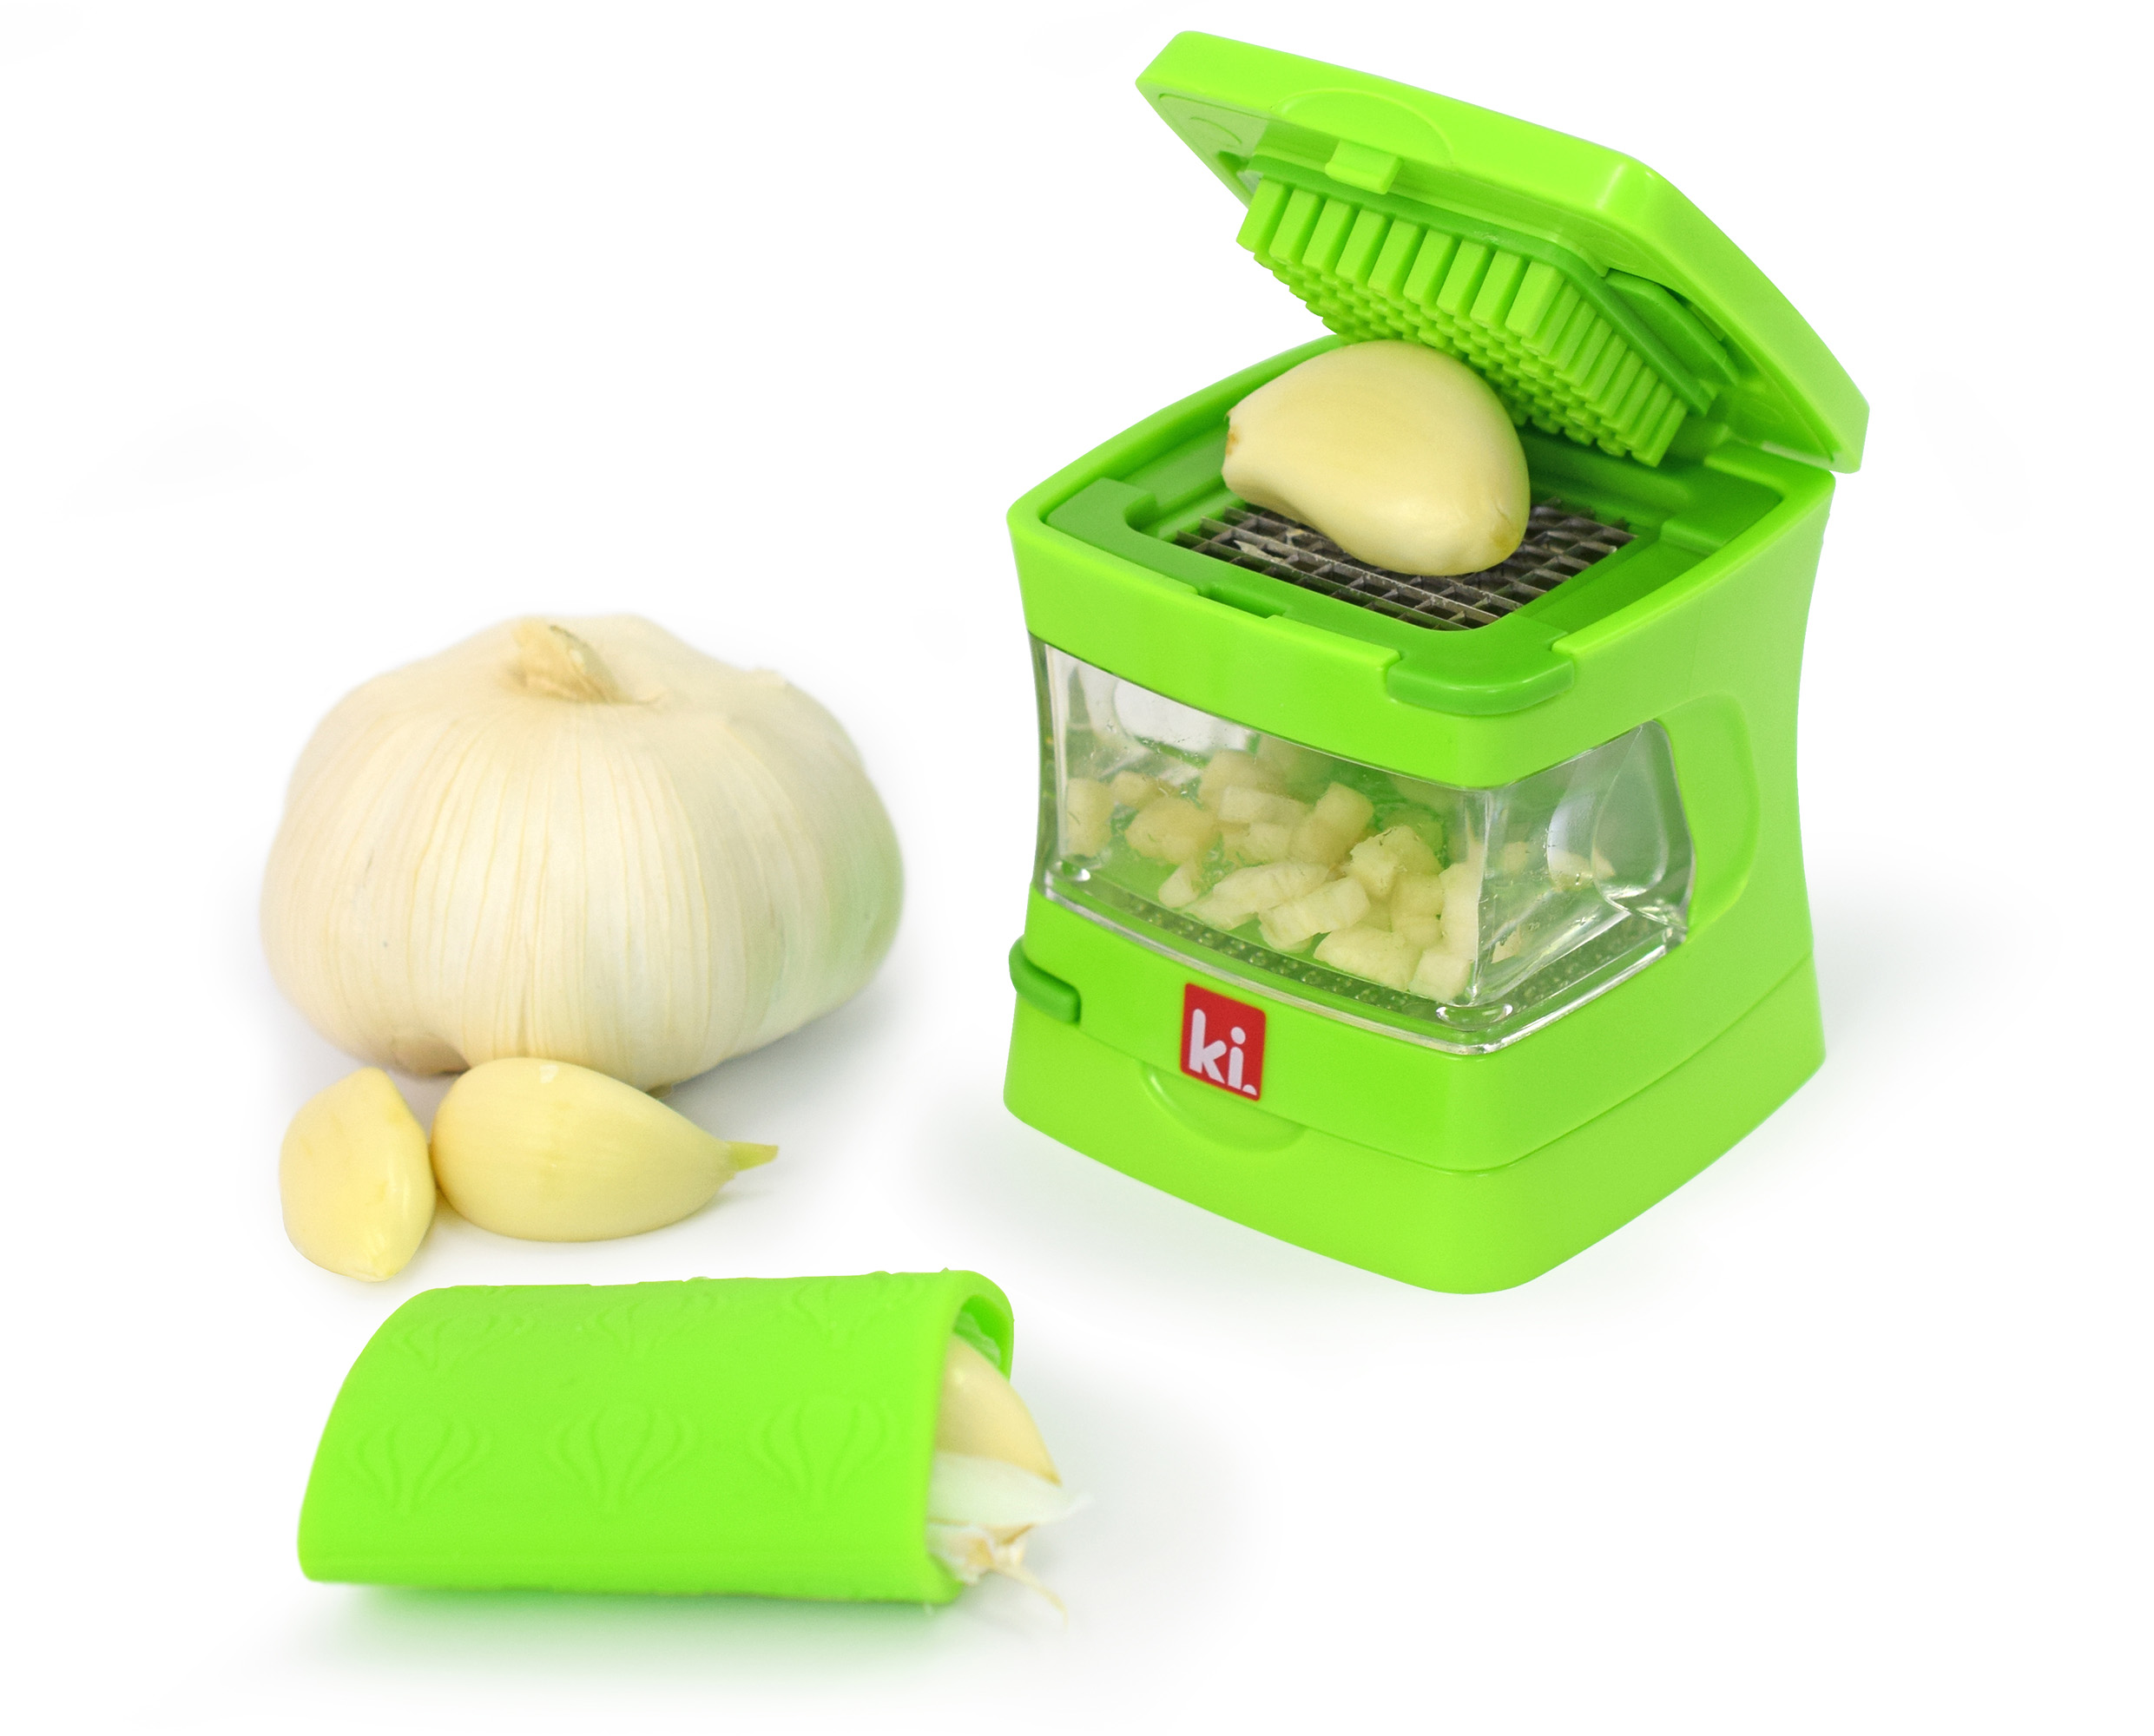 Best Garlic peeling tool